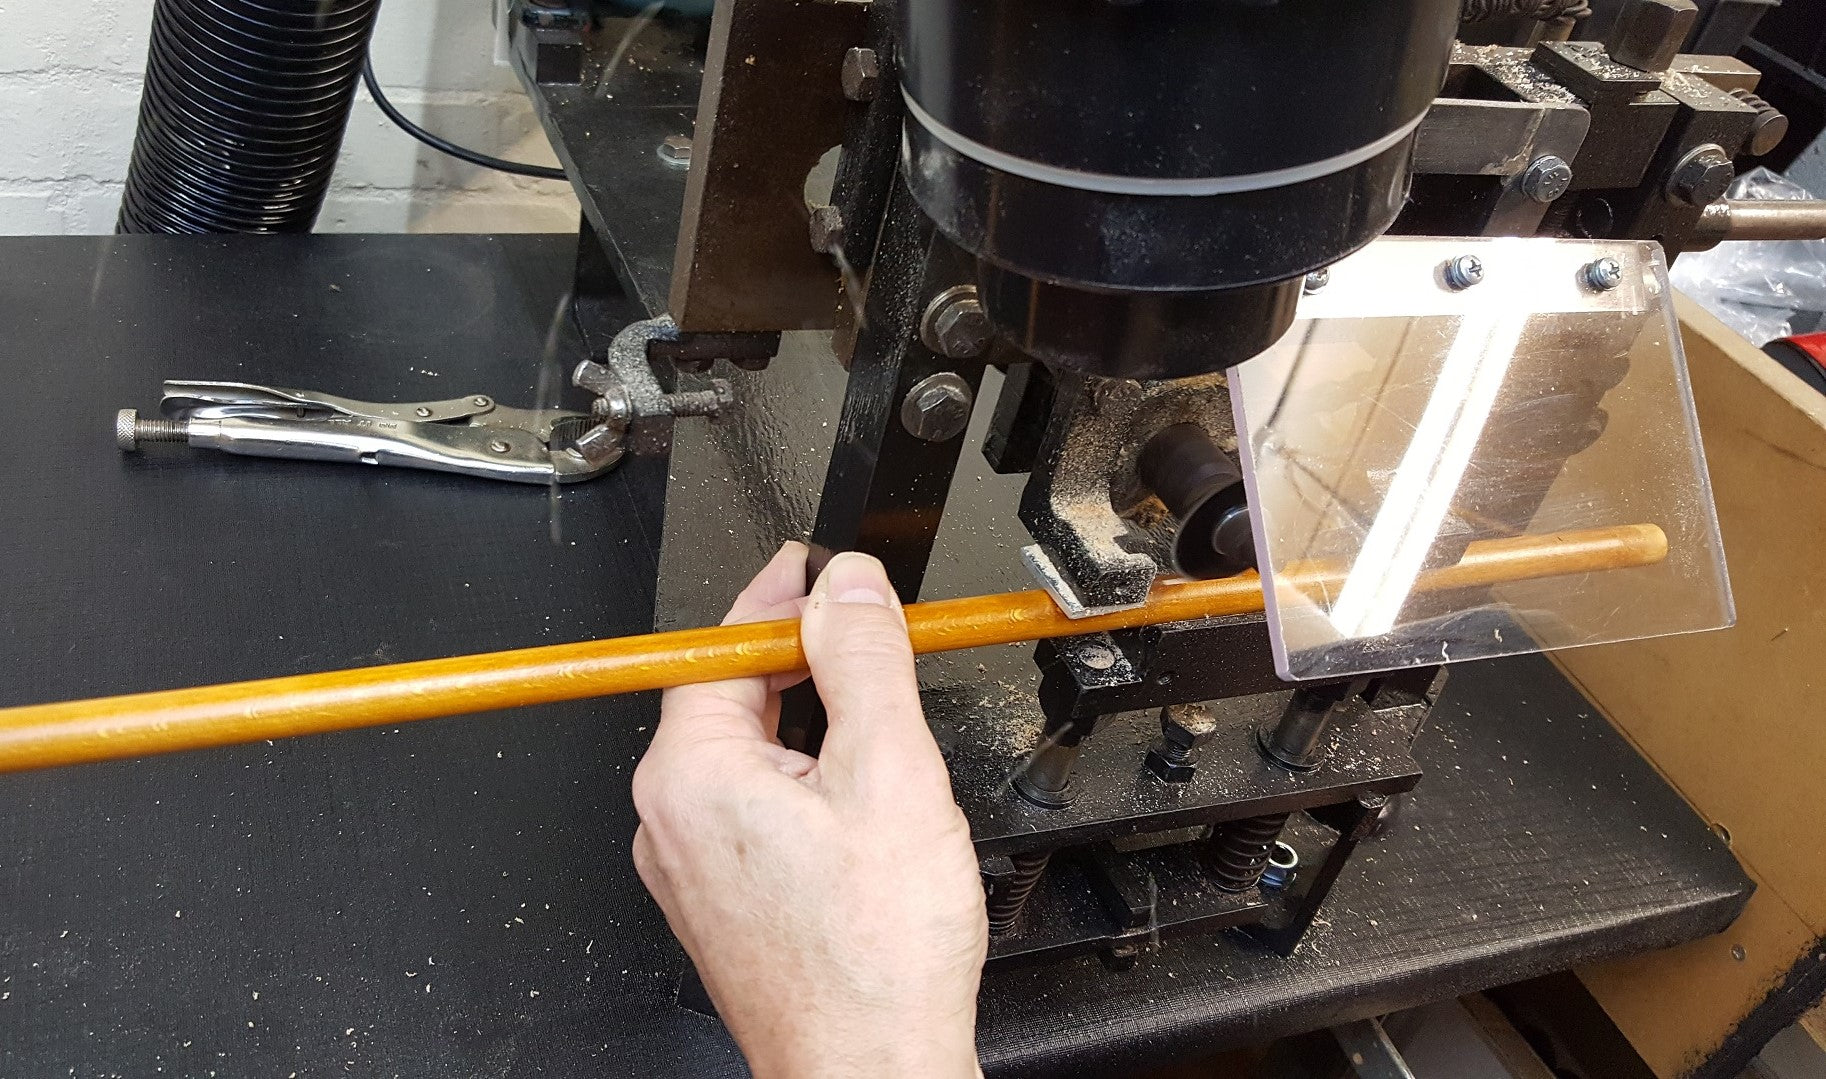 Making slots in an FSC beechwood dowel for a James Ince Umbrella